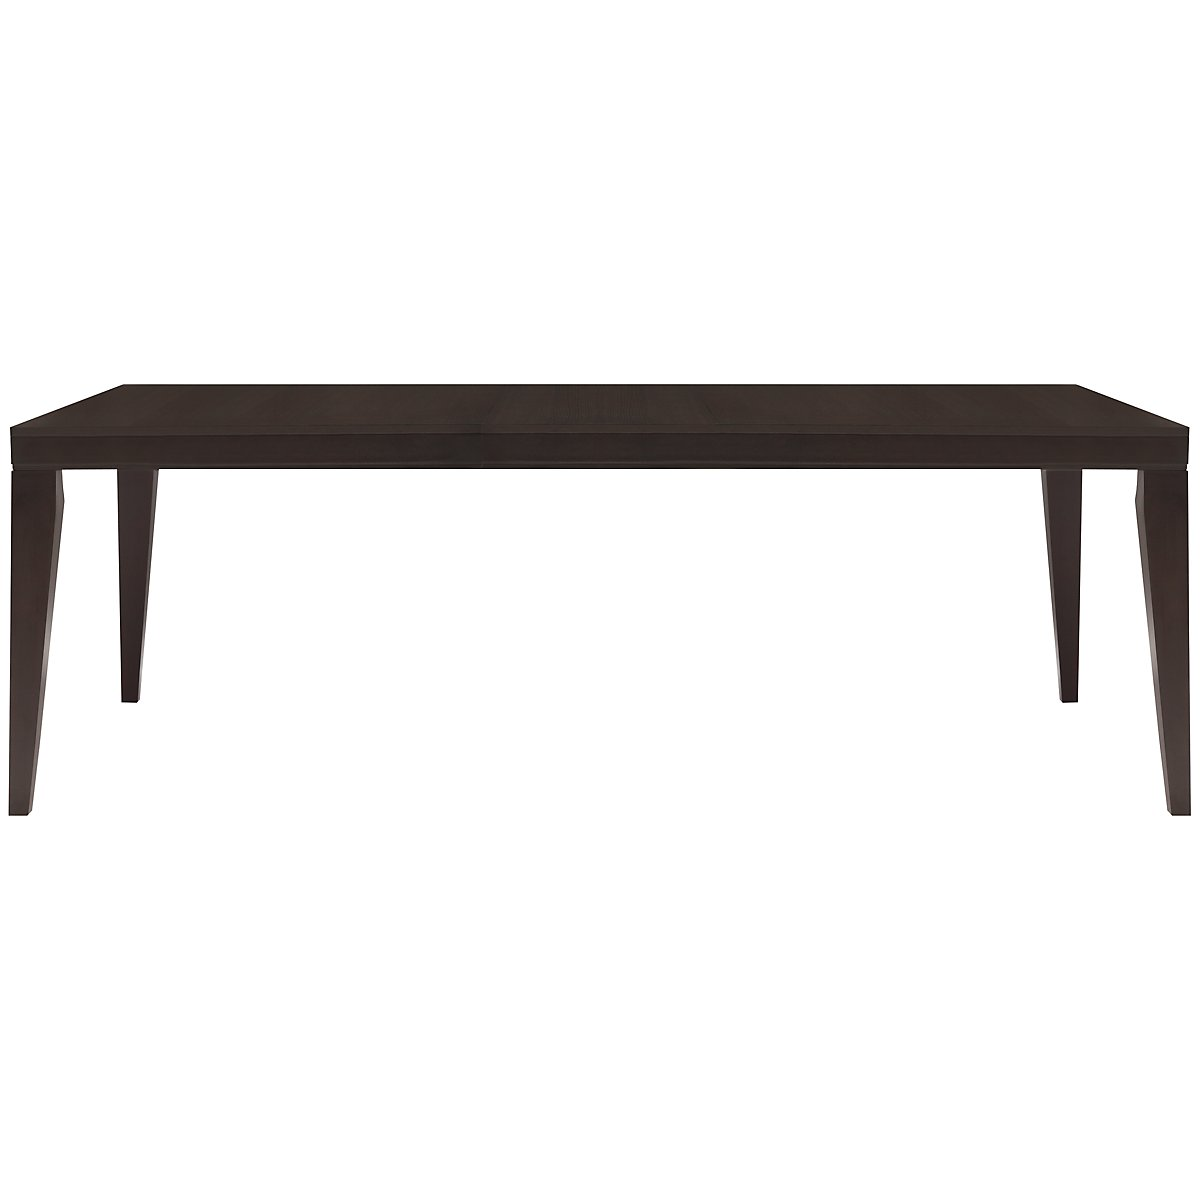 Encore2 Dark Tone Rectangular Table